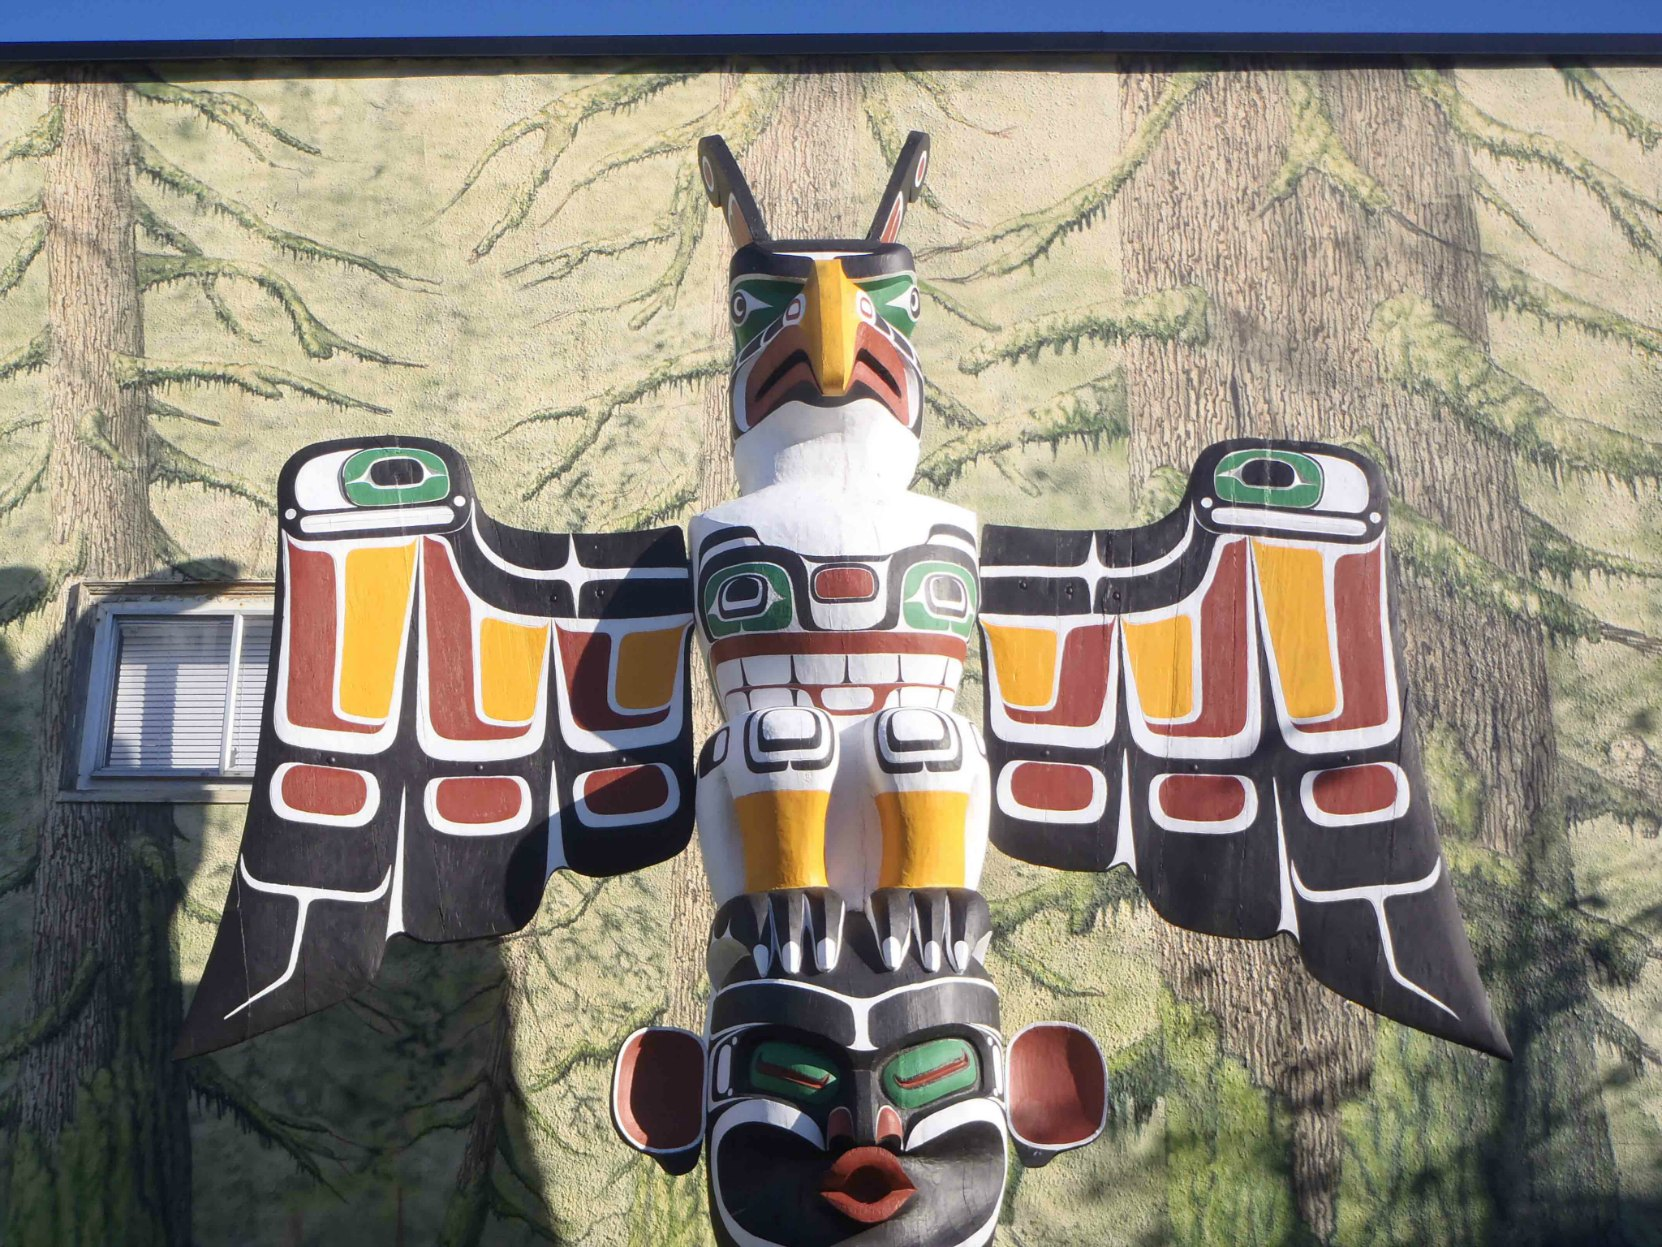 Thunderbird and Dzunuk'wa totem pole,Thunderbird figure, Station Street at Craig Street, Duncan, B.C.